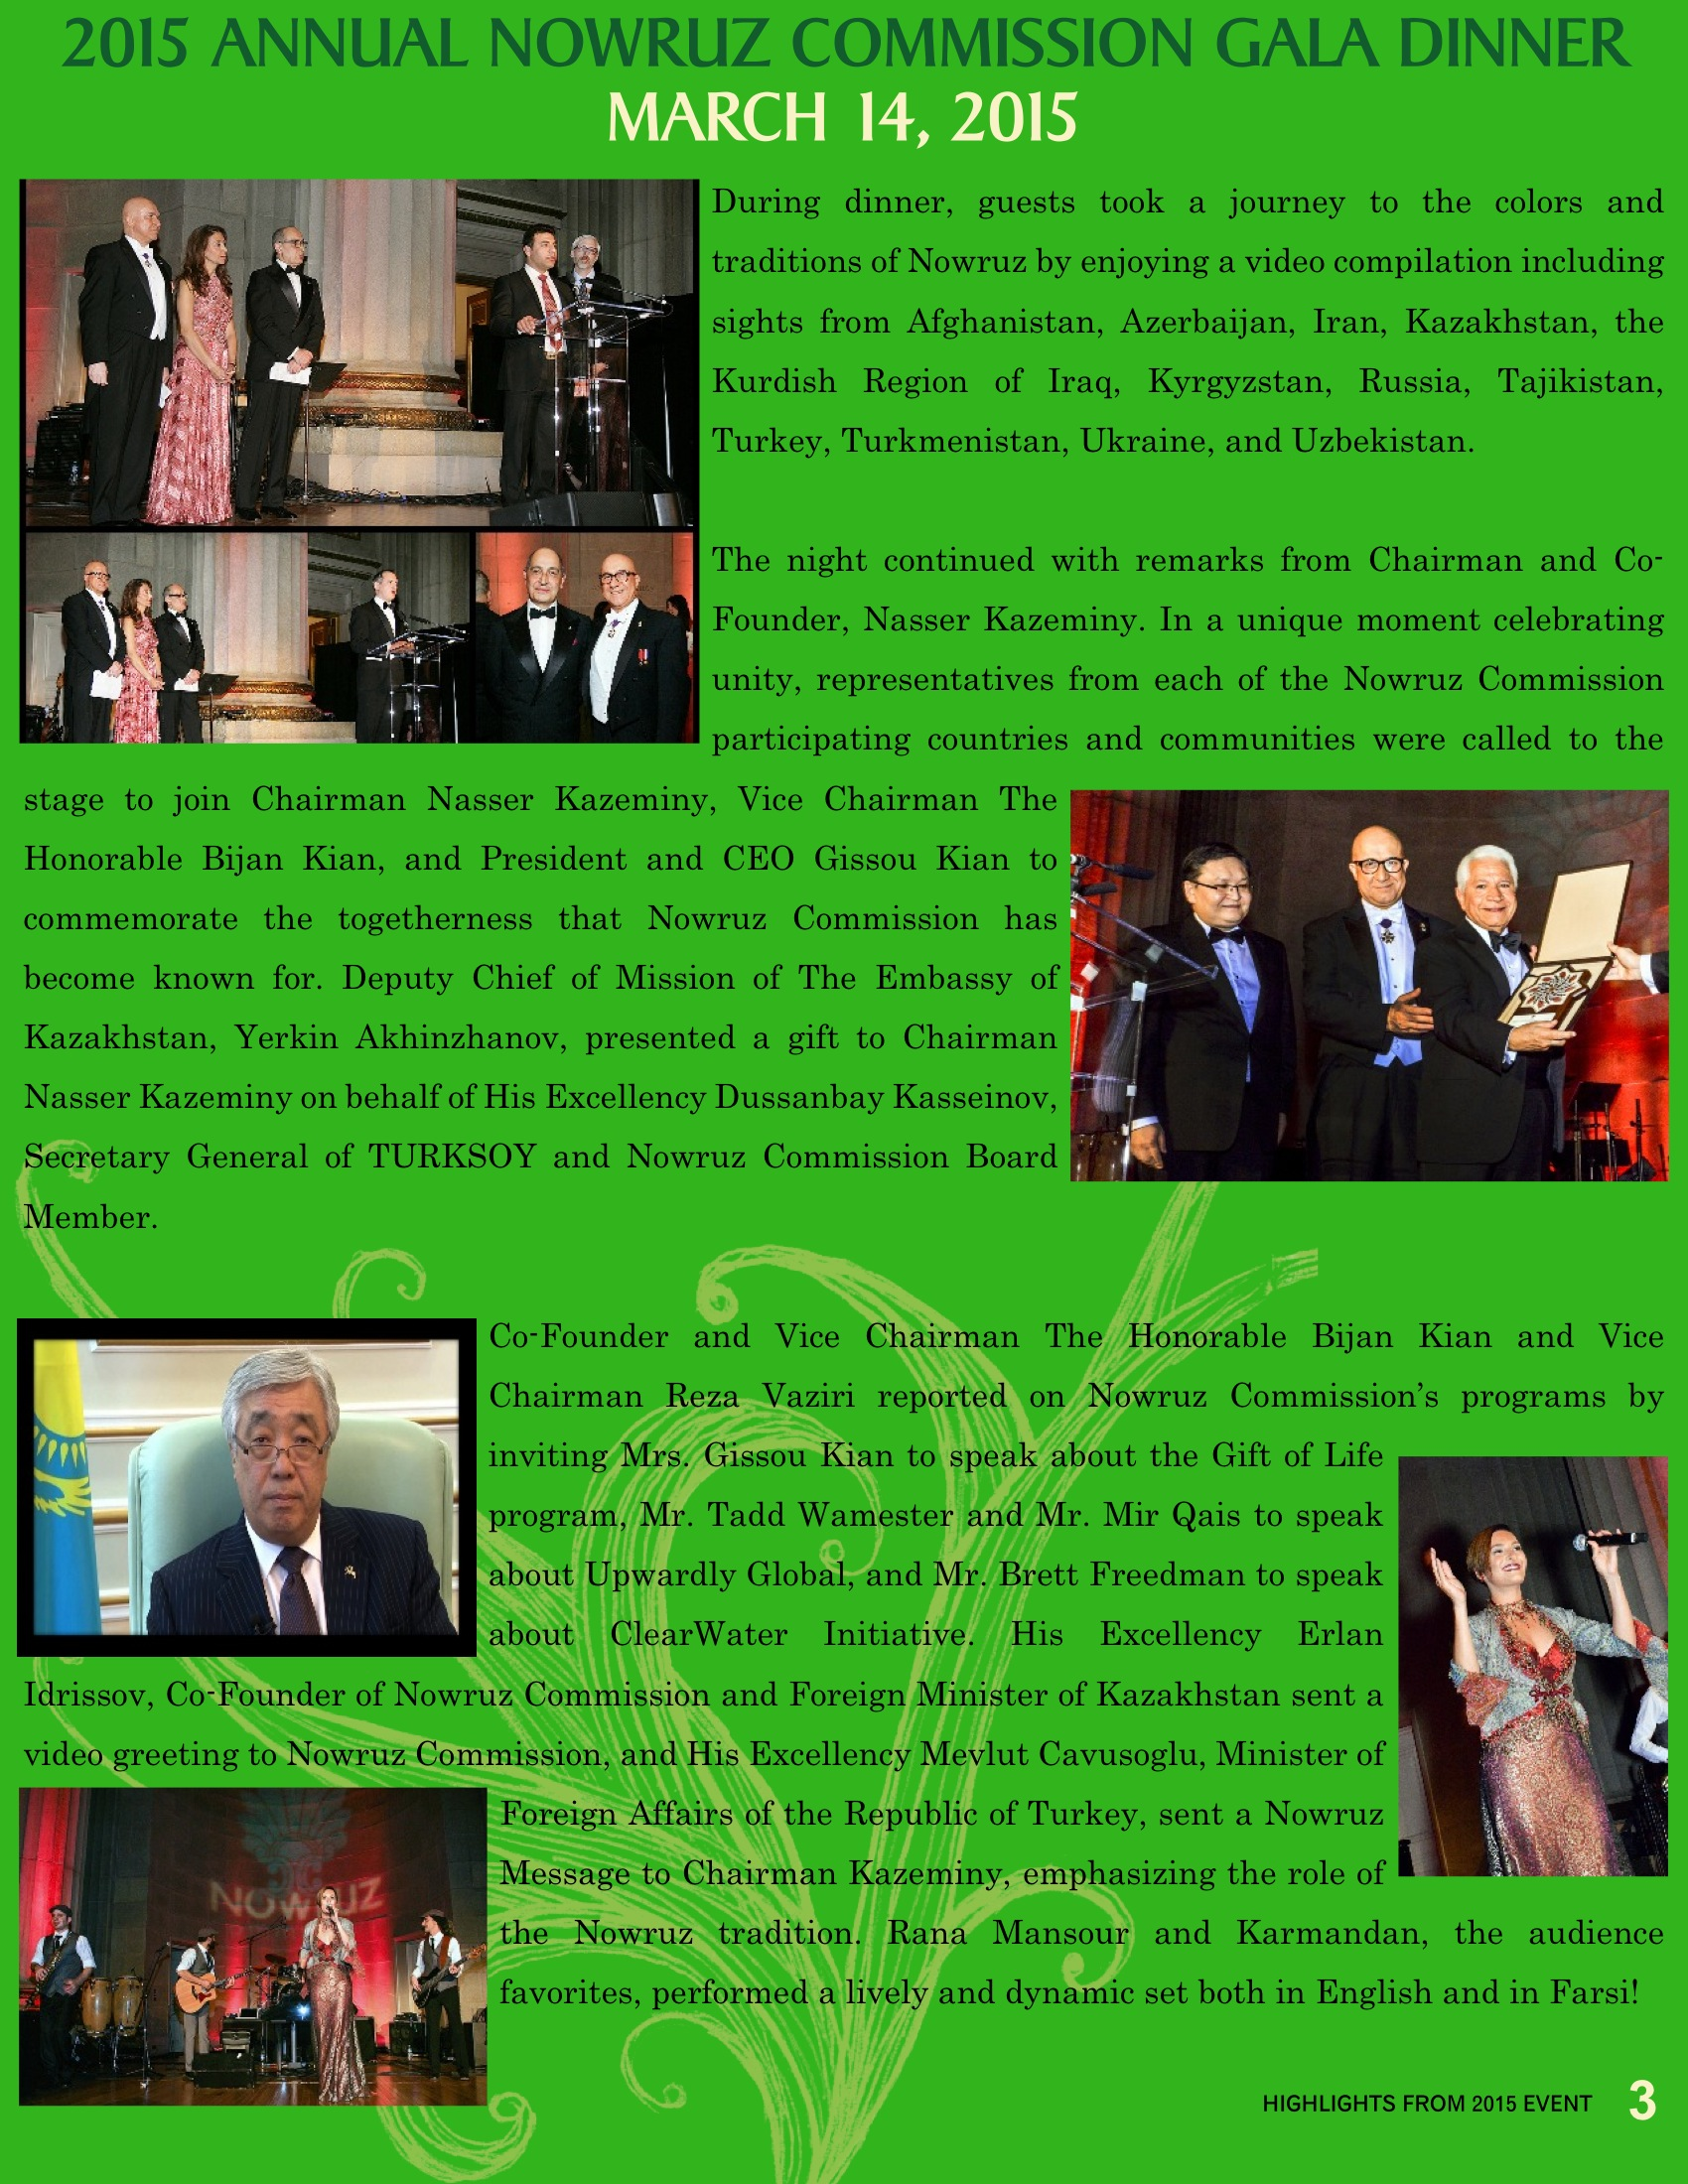 highlights from 2015 nowruz commission highlights from 2015